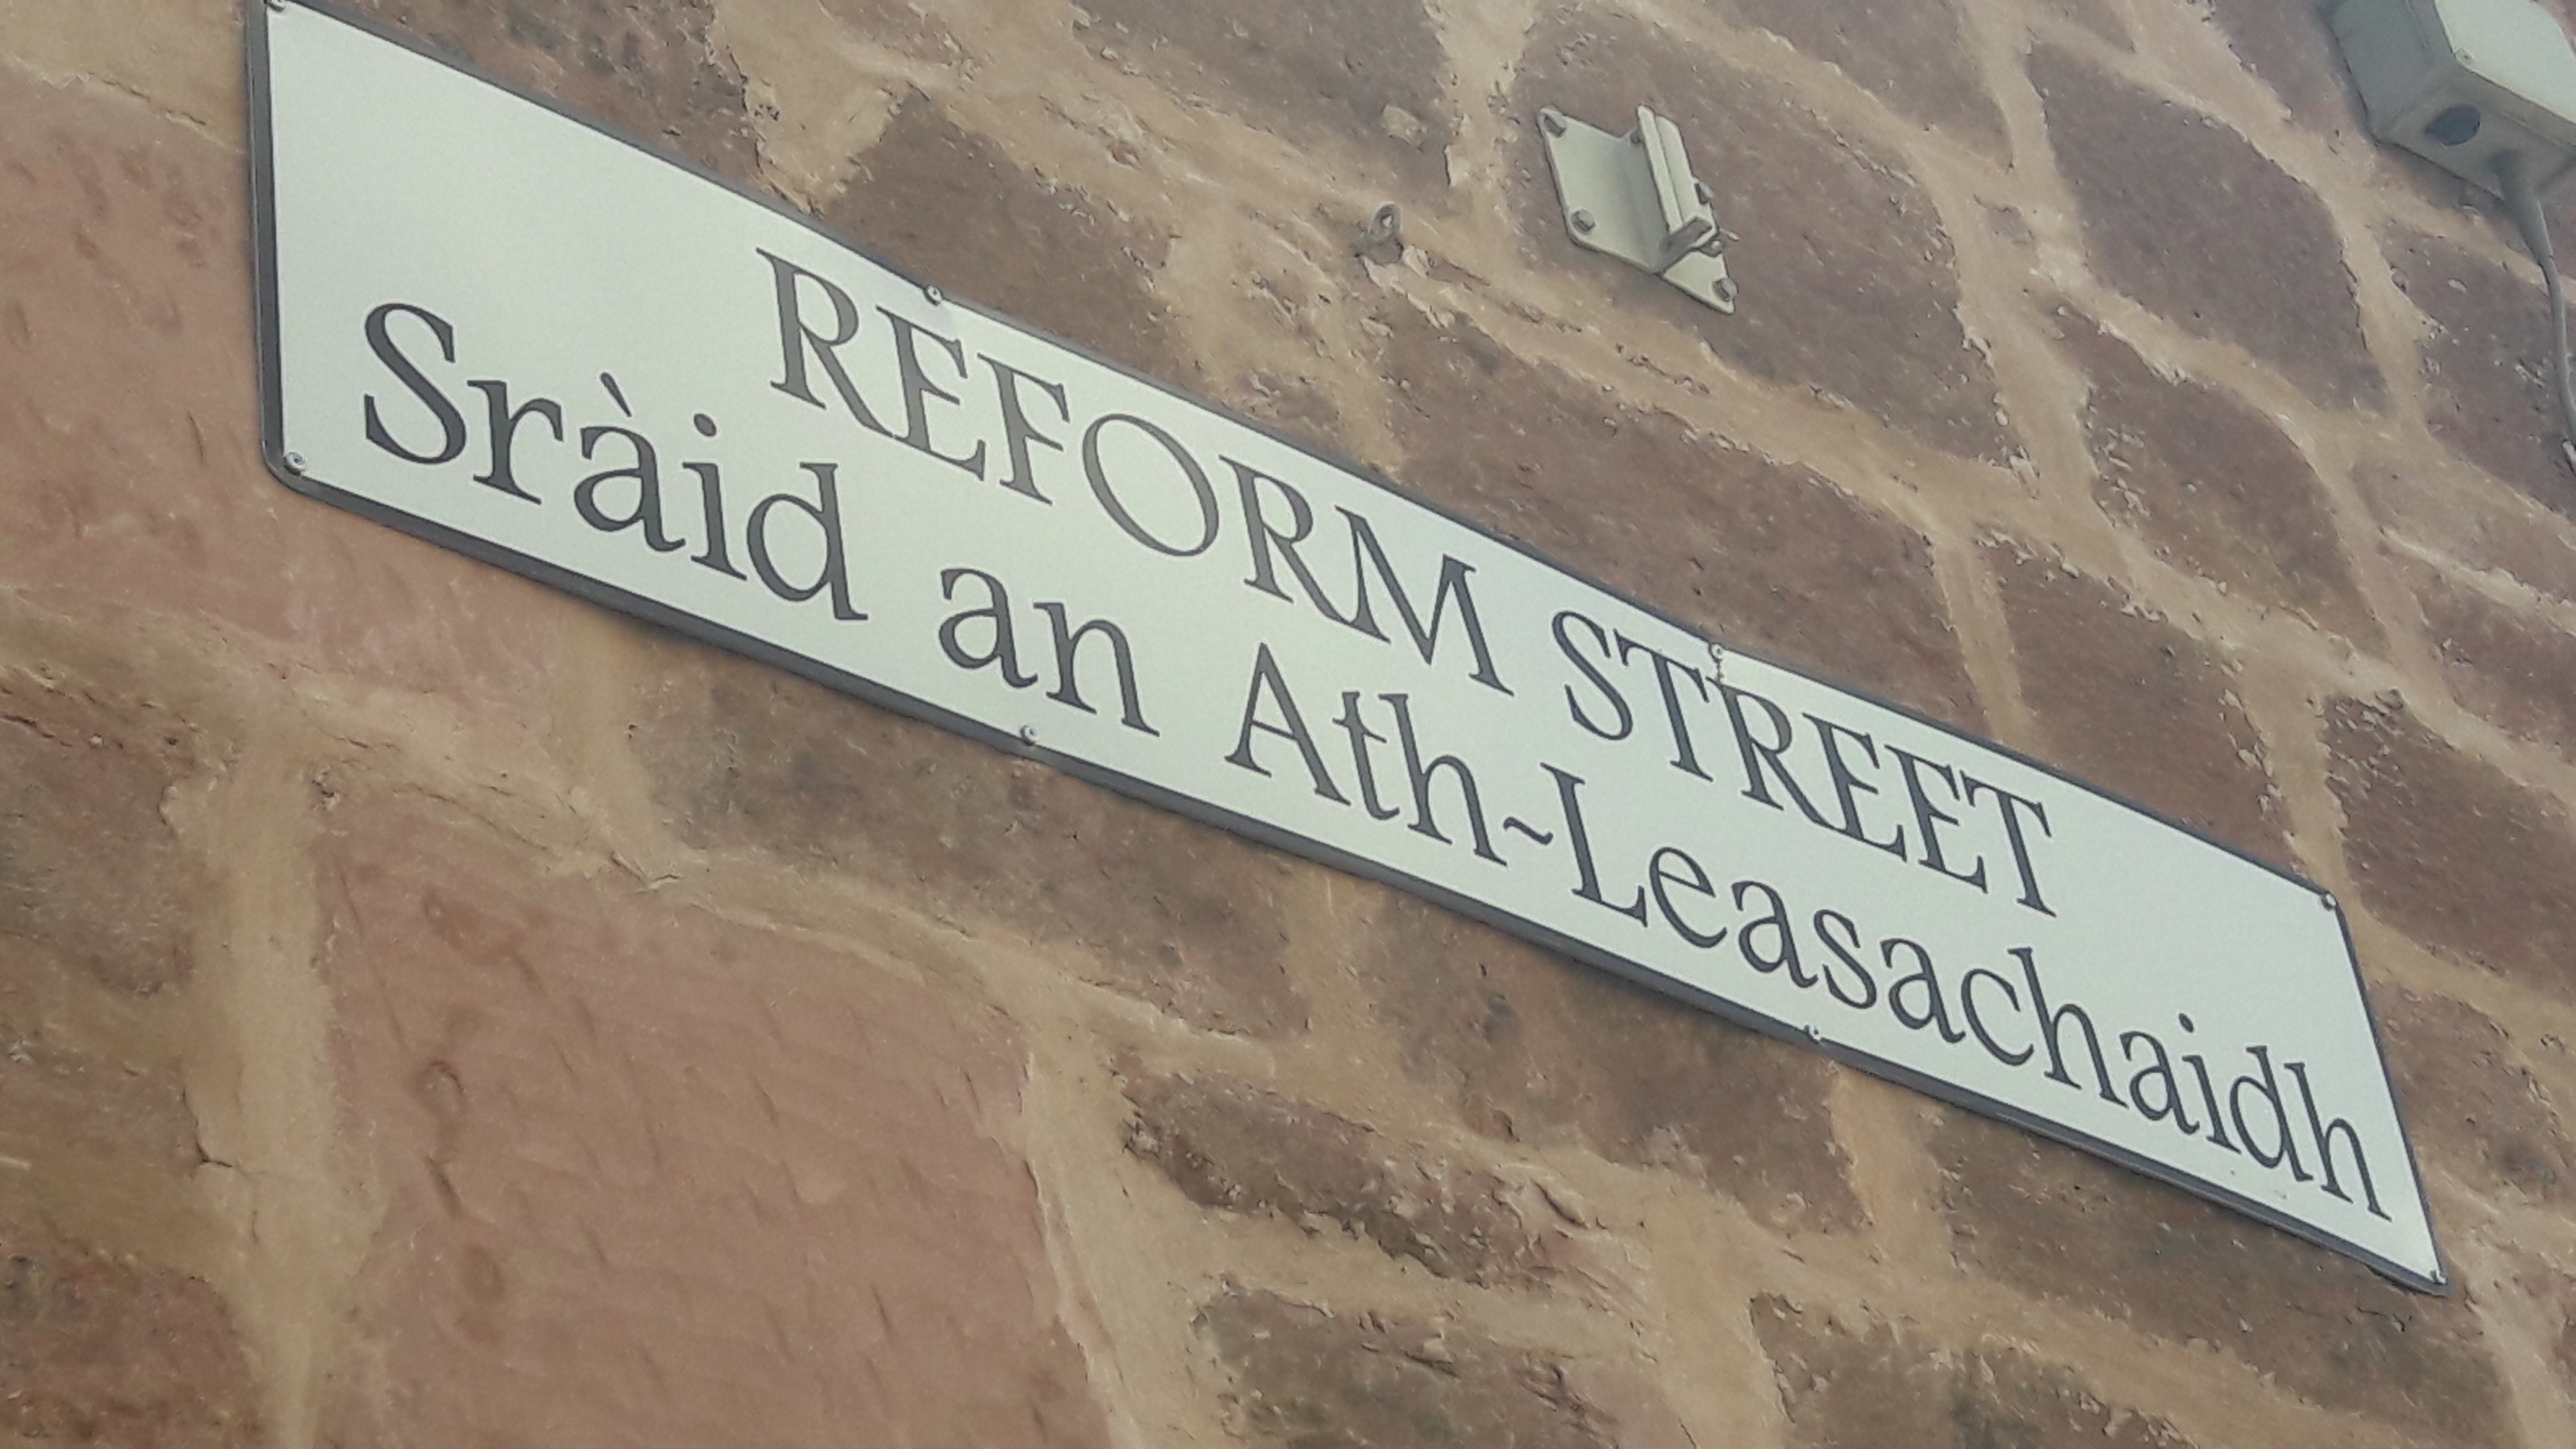 More street signs with Gaelic translation, like this one in Kirriemuir, could appear under the plan